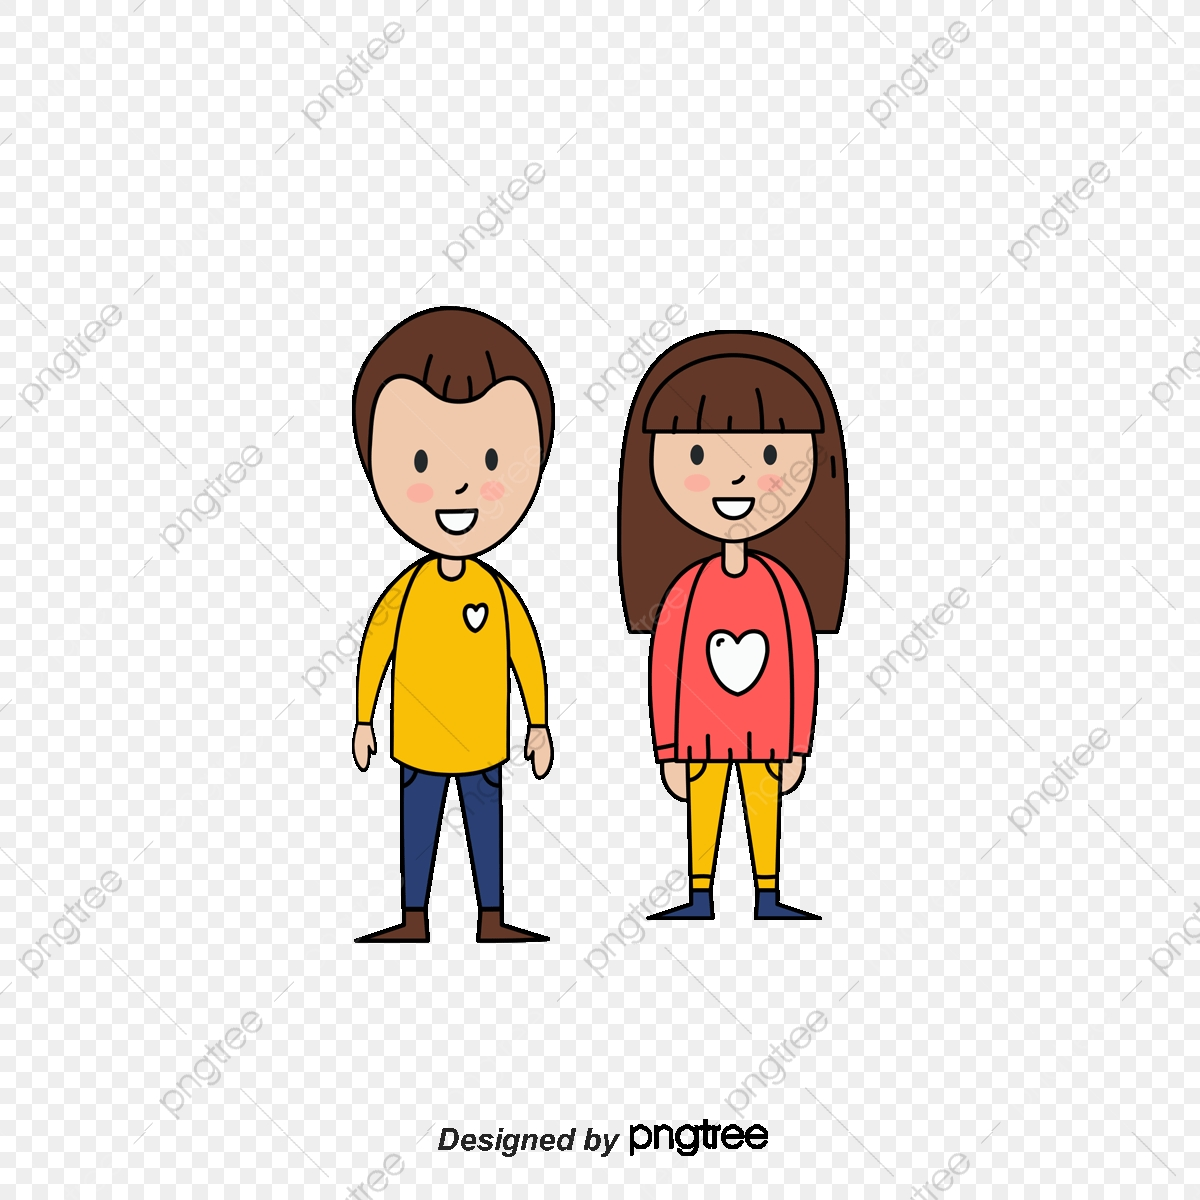 Cartoon Characters Mom And Dad, Mom And Dad, Cartoon, Character PNG.